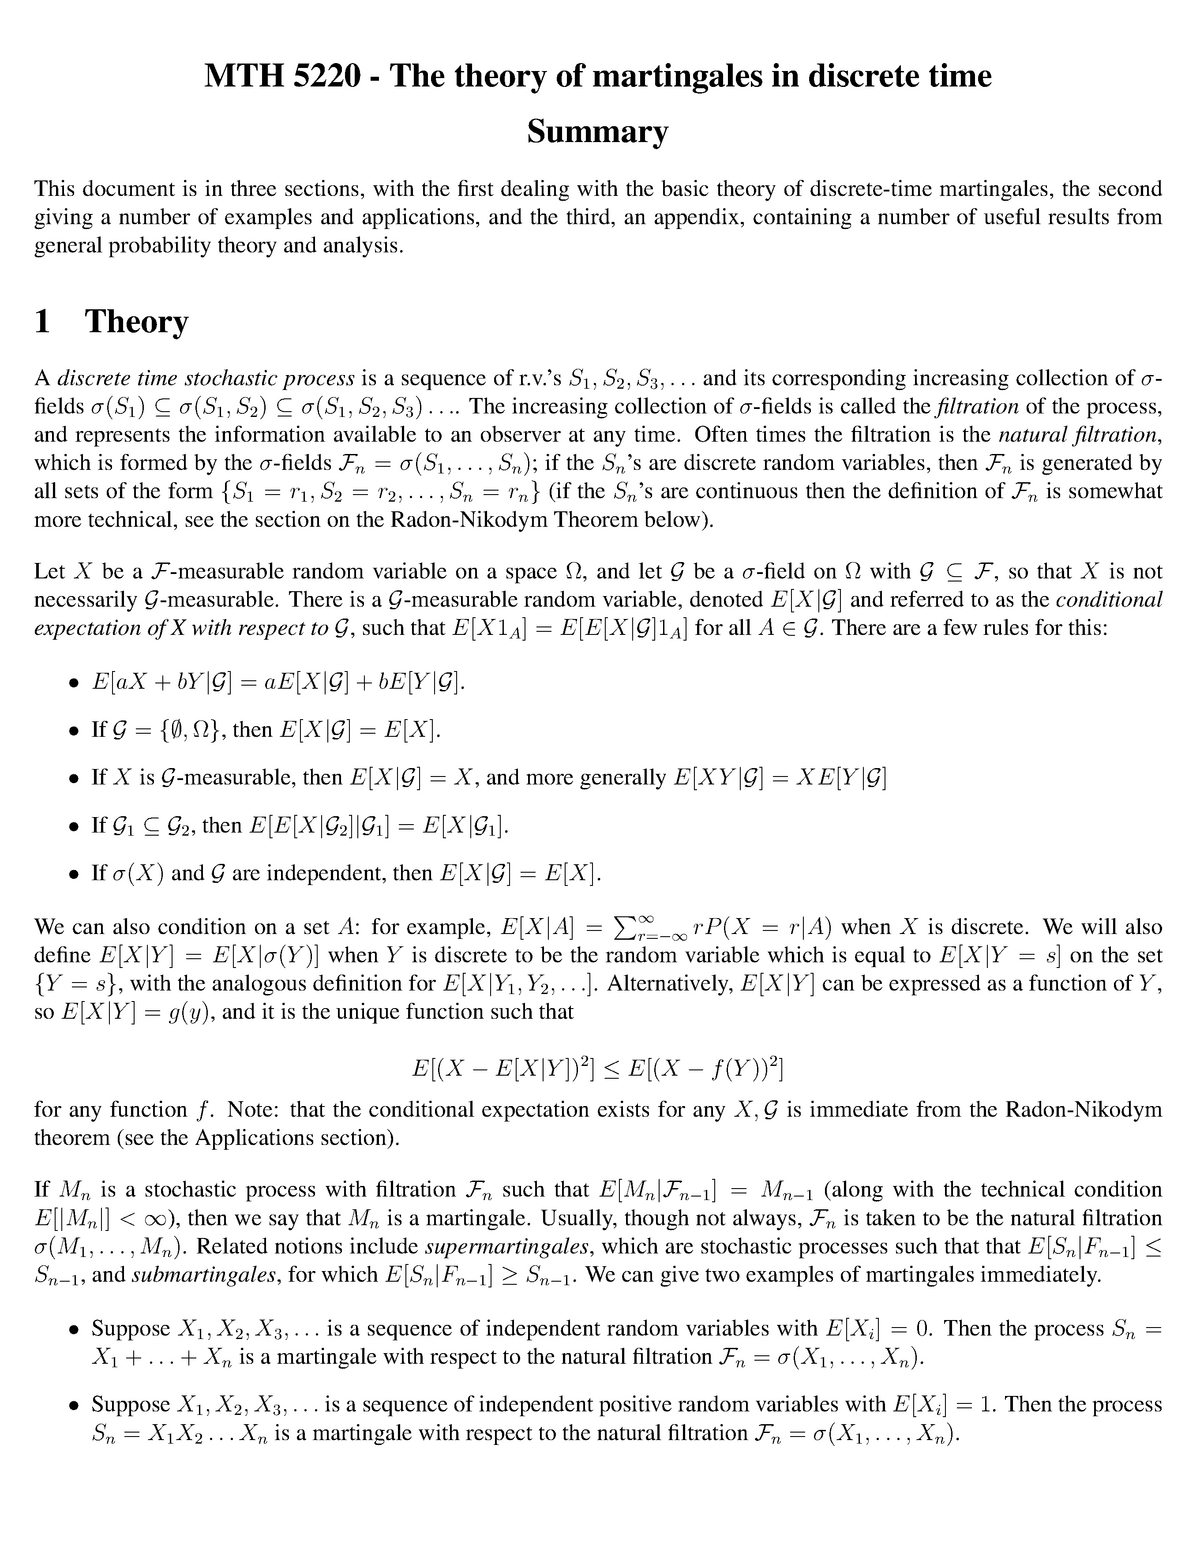 Summary math 5220 - The theory of martingales in discrete